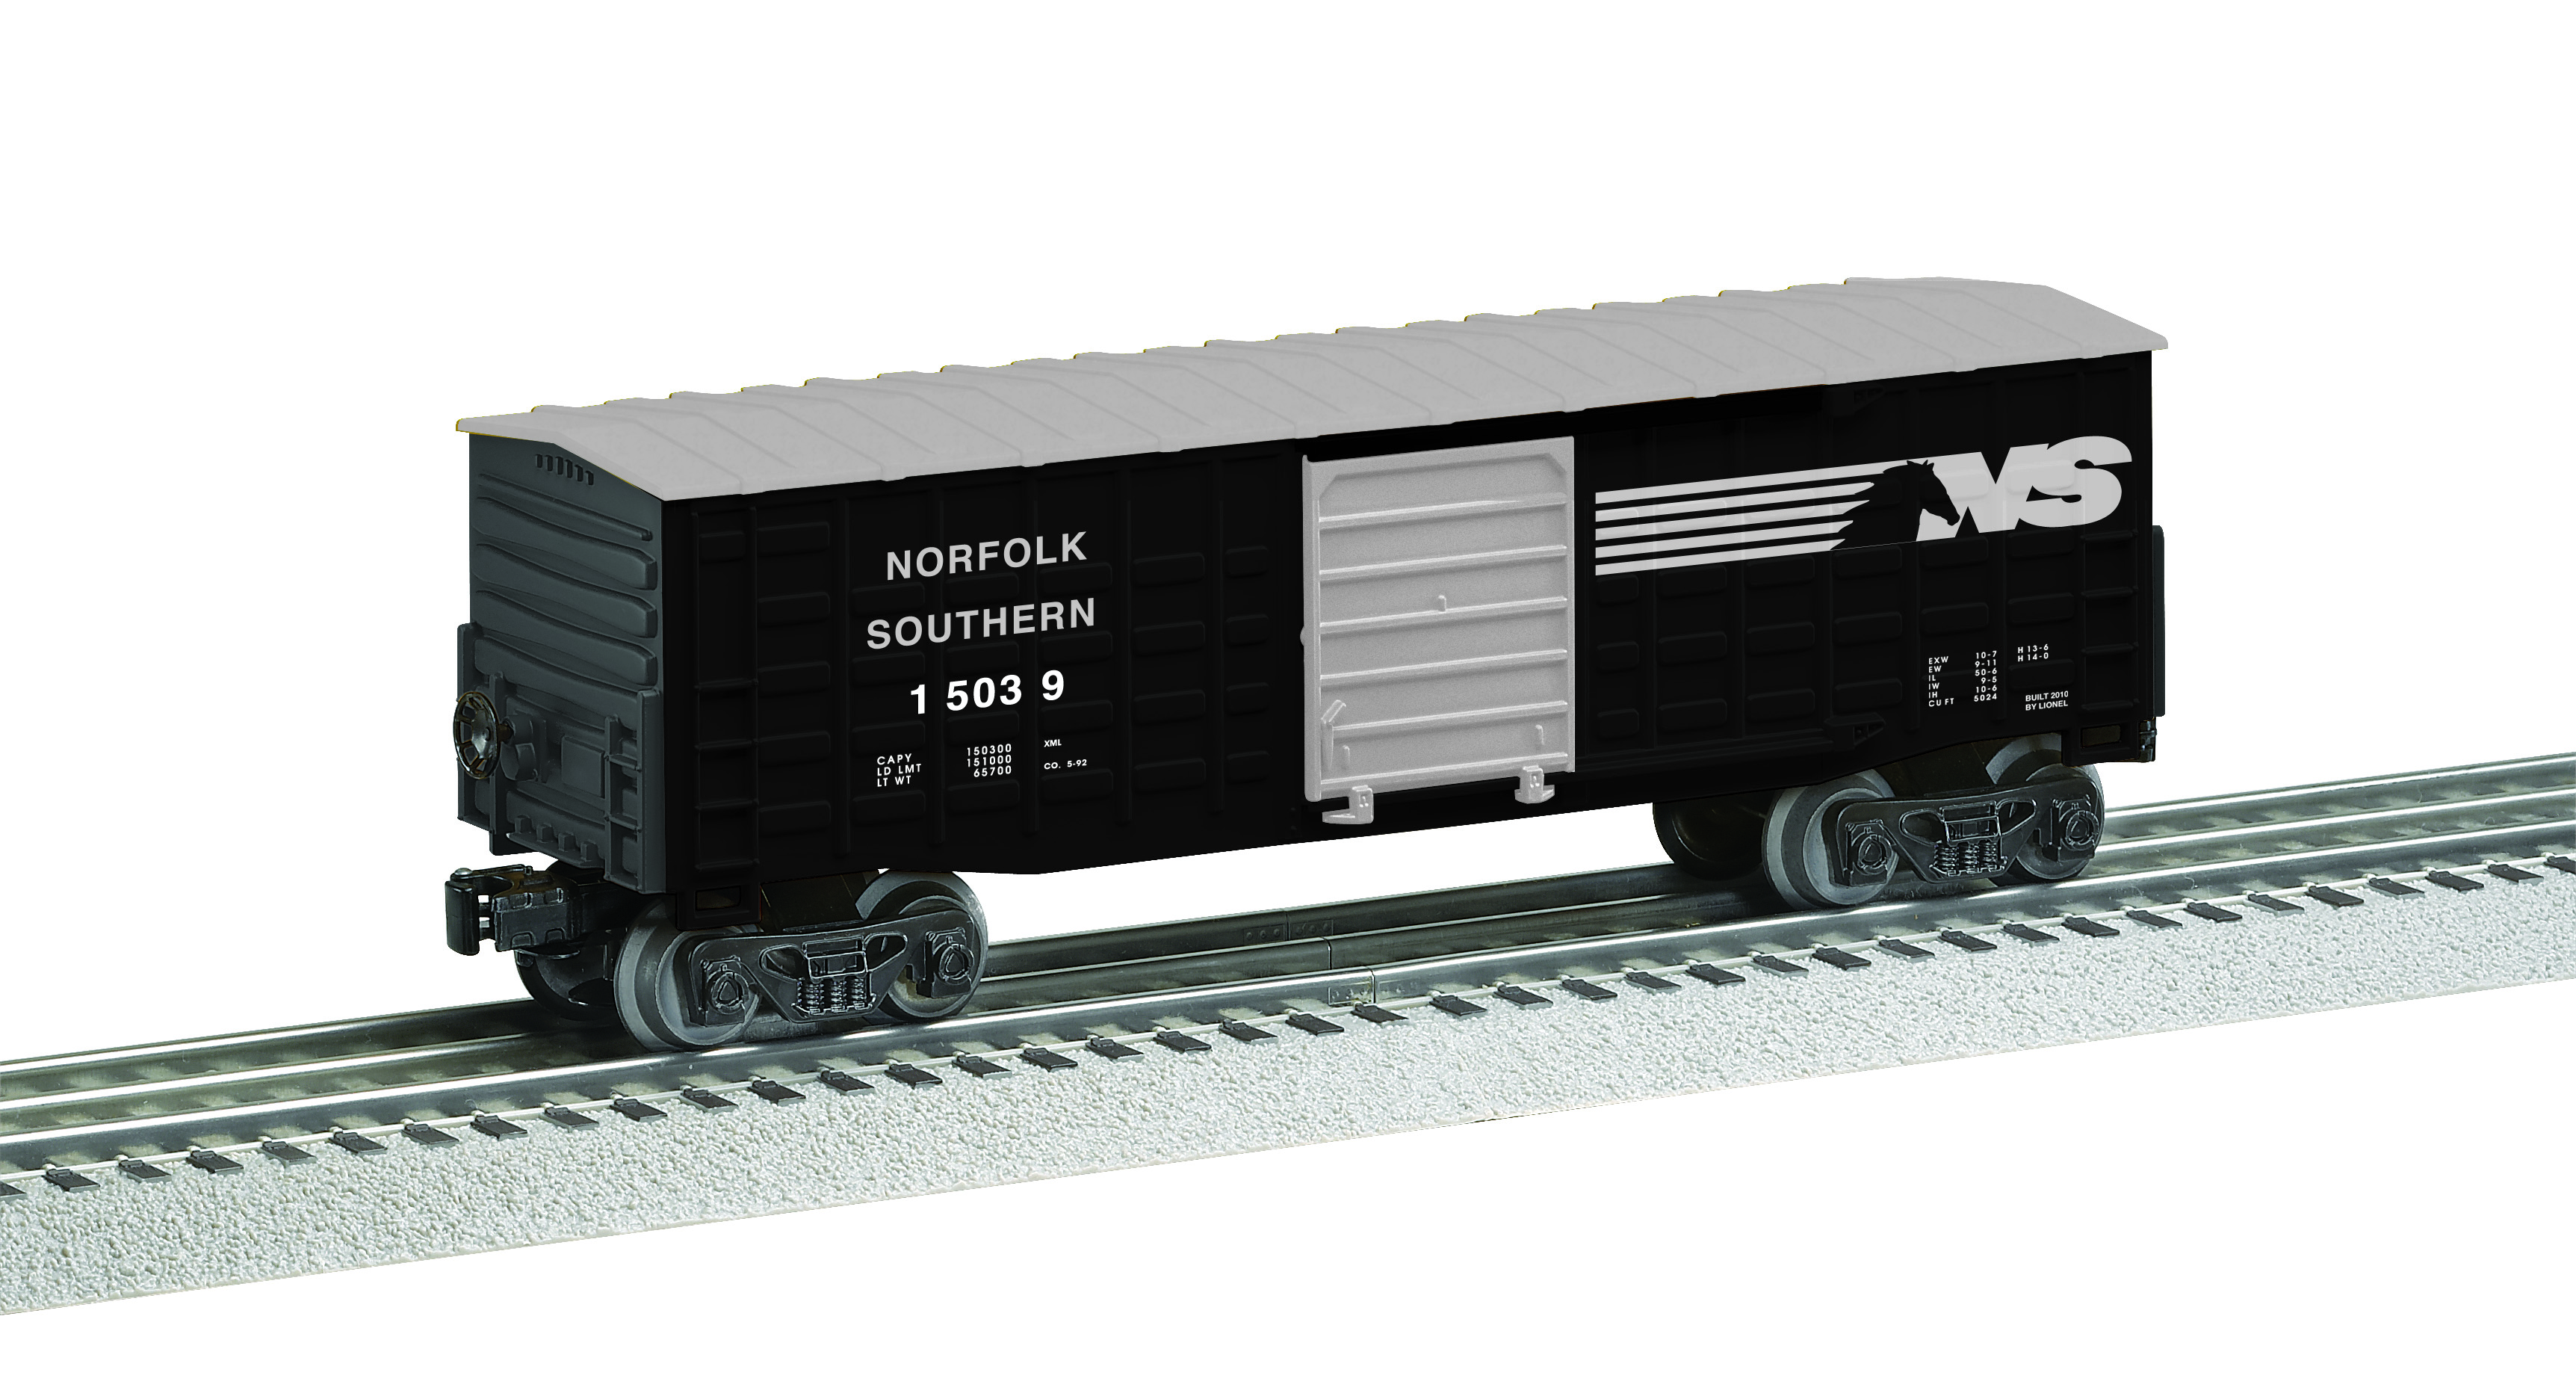 6-15039 NORFOLK SOUTHERN WAFFLED-SIDE BOXCAR